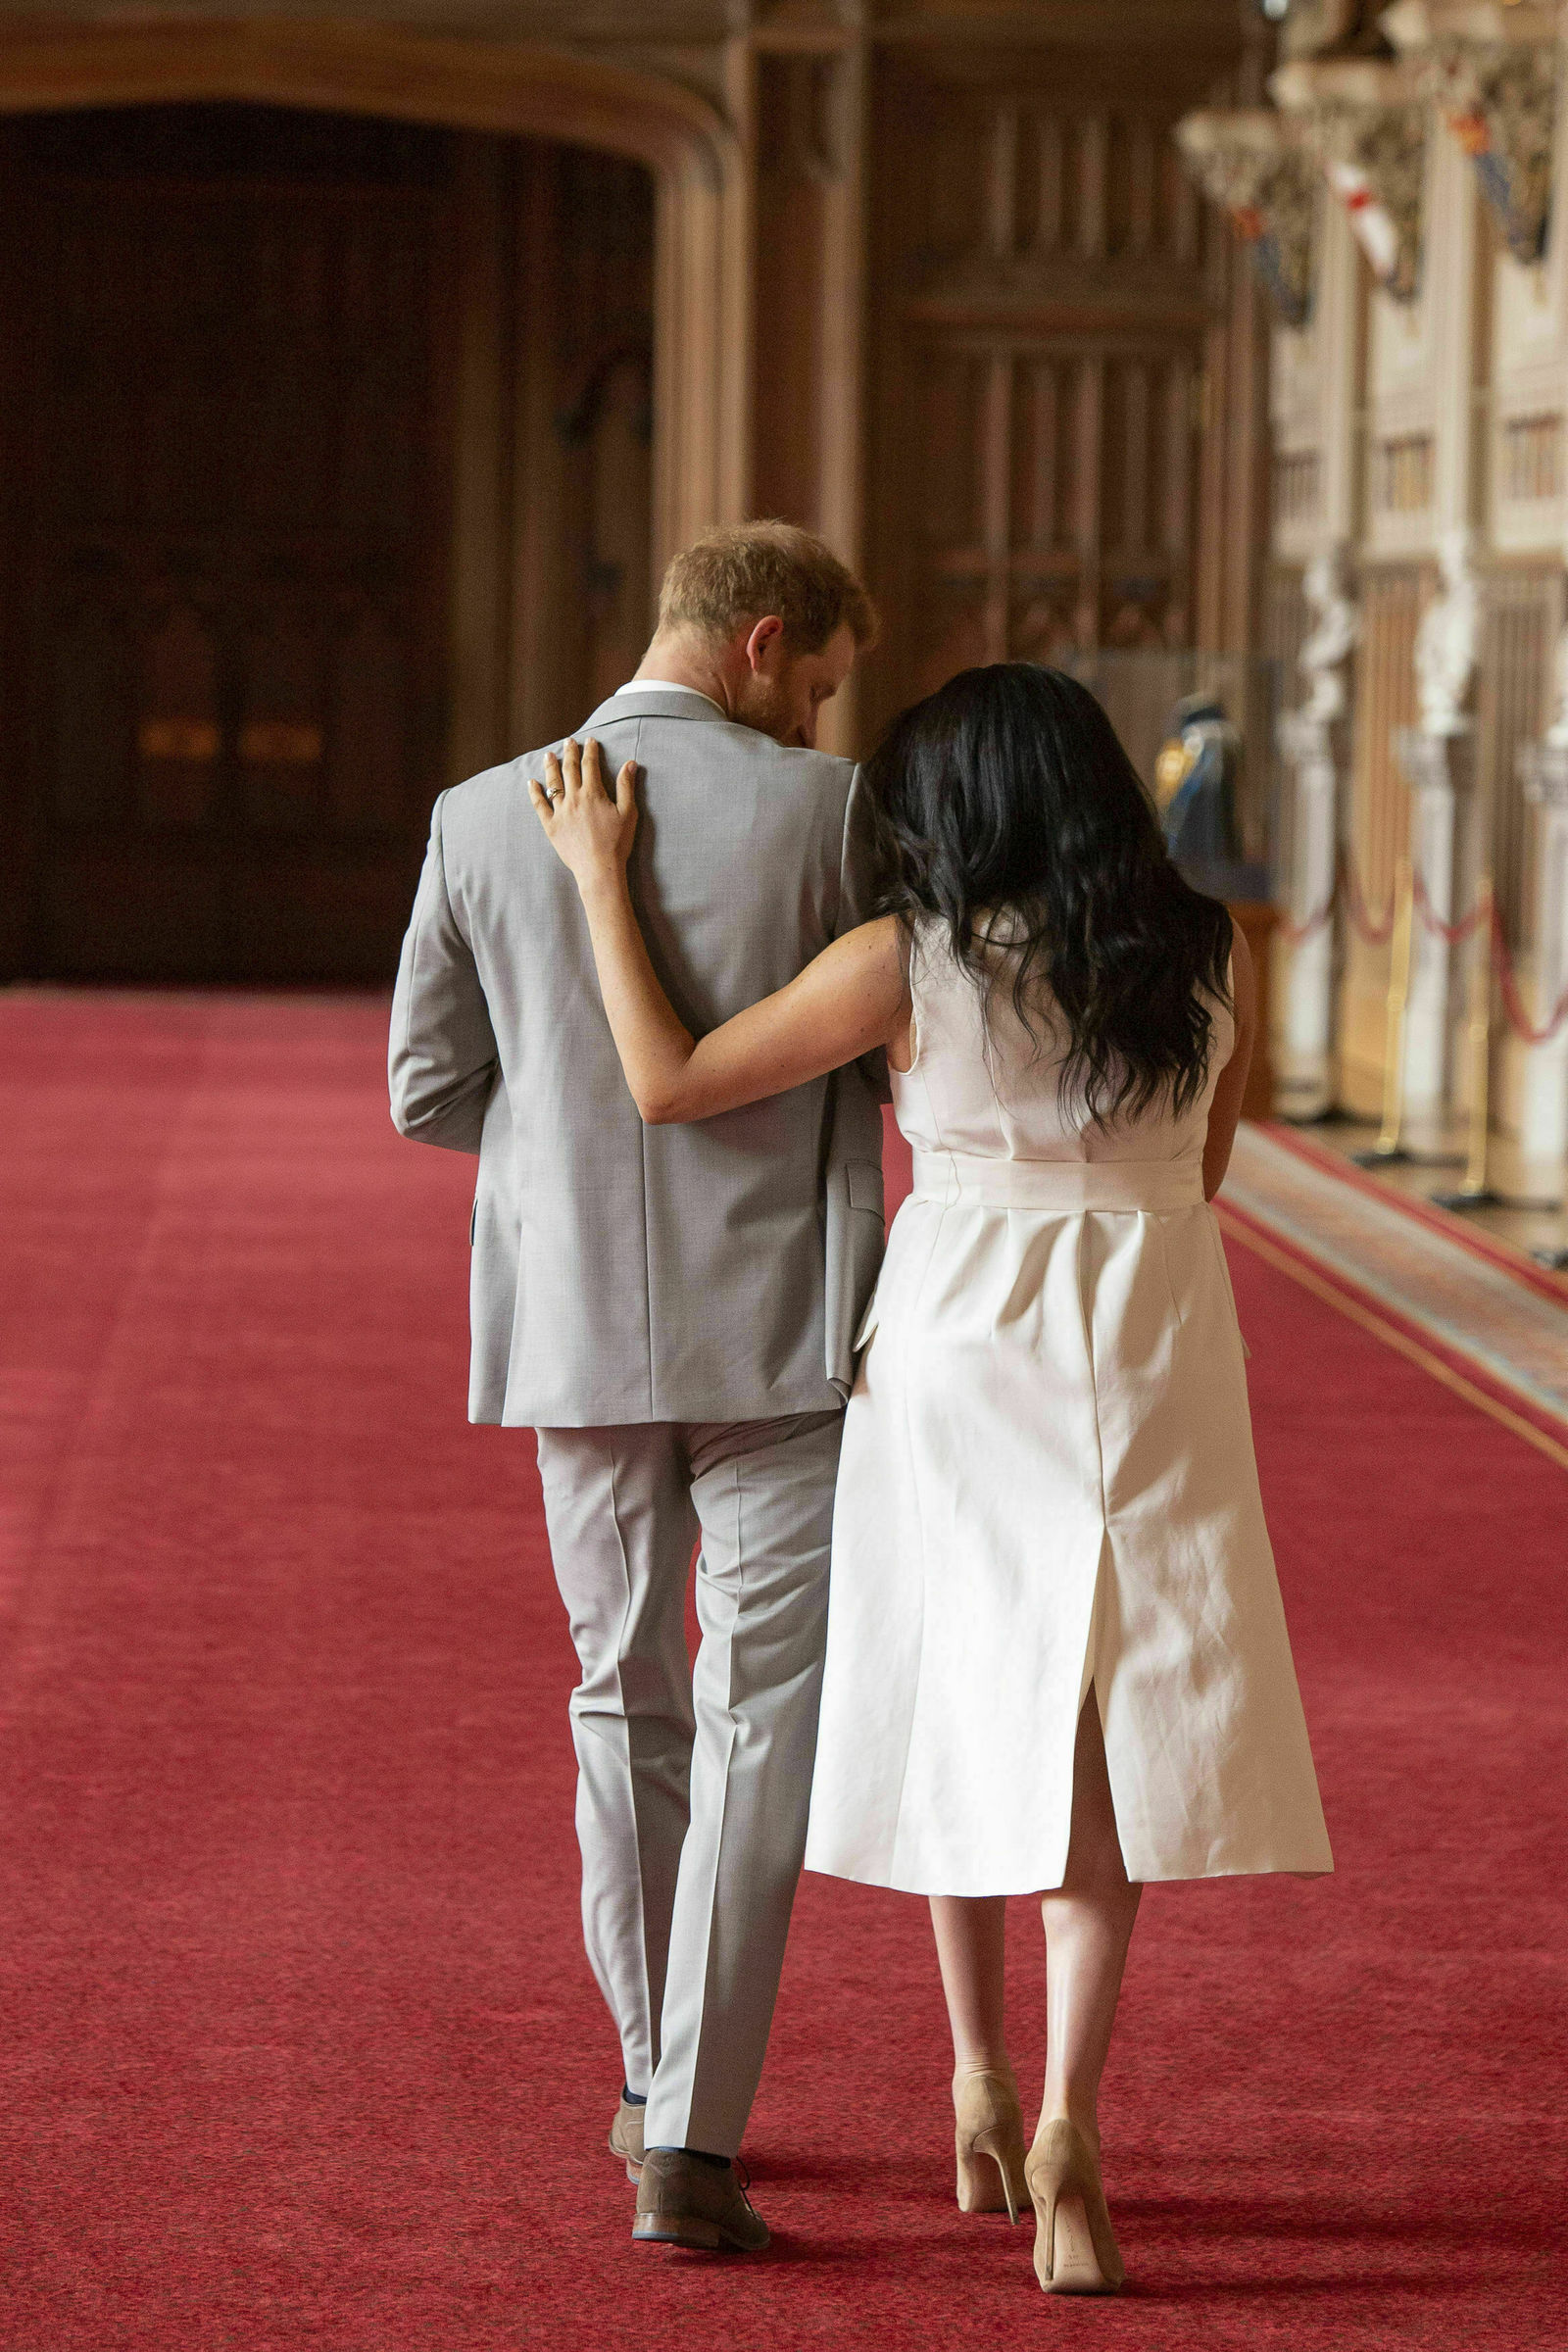 FILE - In this Wednesday May 8, 2019 file photo Britain's Prince Harry and Meghan, Duchess of Sussex, leave after a photo call with their newborn son, in St George's Hall at Windsor Castle, Windsor, south England. Prince Harry and Meghan Markle are to no longer use their HRH titles and will repay £2.4 million of taxpayer's money spent on renovating their Berkshire home, Buckingham Palace announced Saturday, Jan. 18. 2020. (Dominic Lipinski/Pool via AP, File)